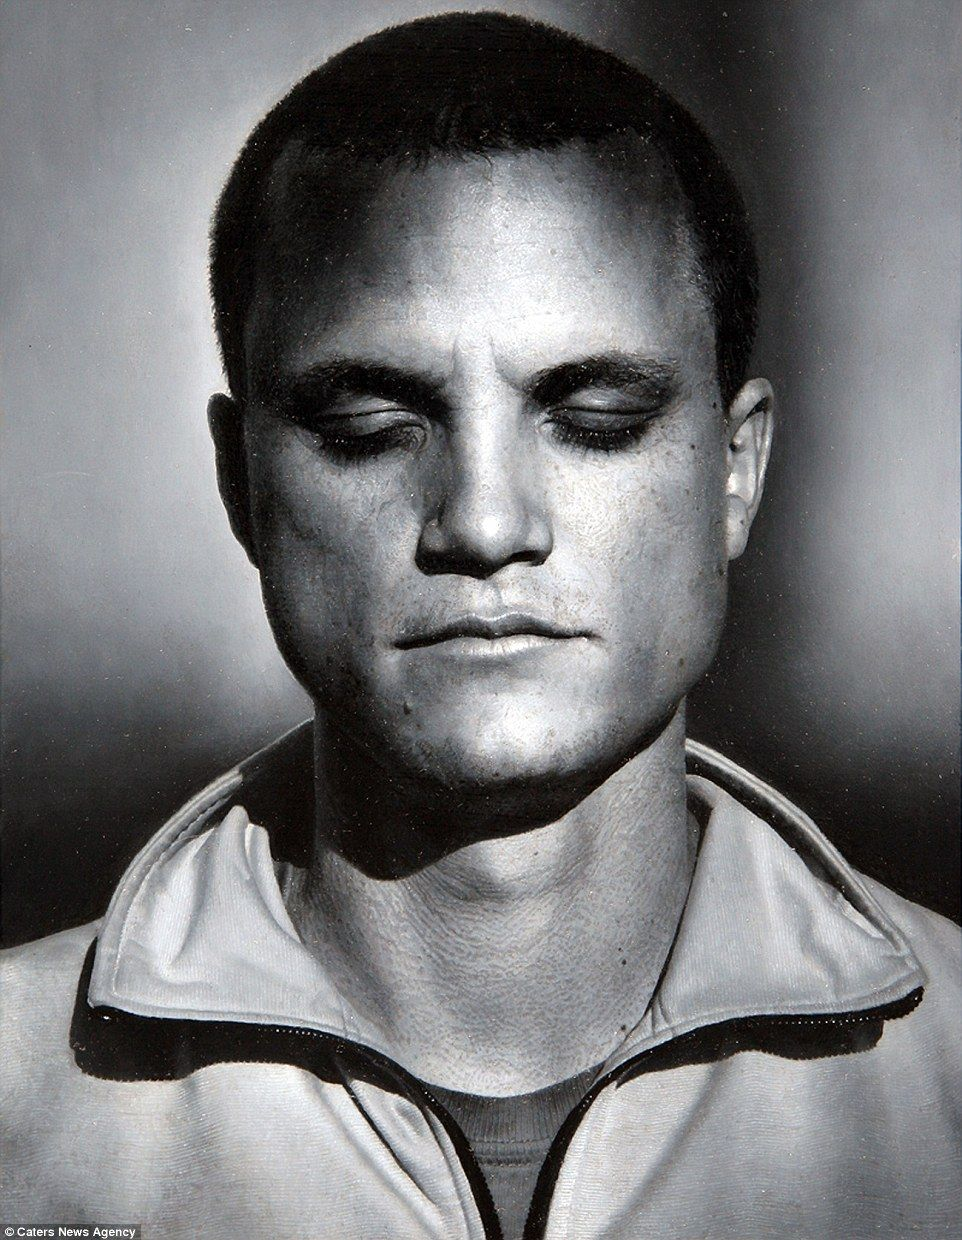 The us artist specialises in beautifully in depth oil painted portraits including this intricate black and white portrait of a man called matt